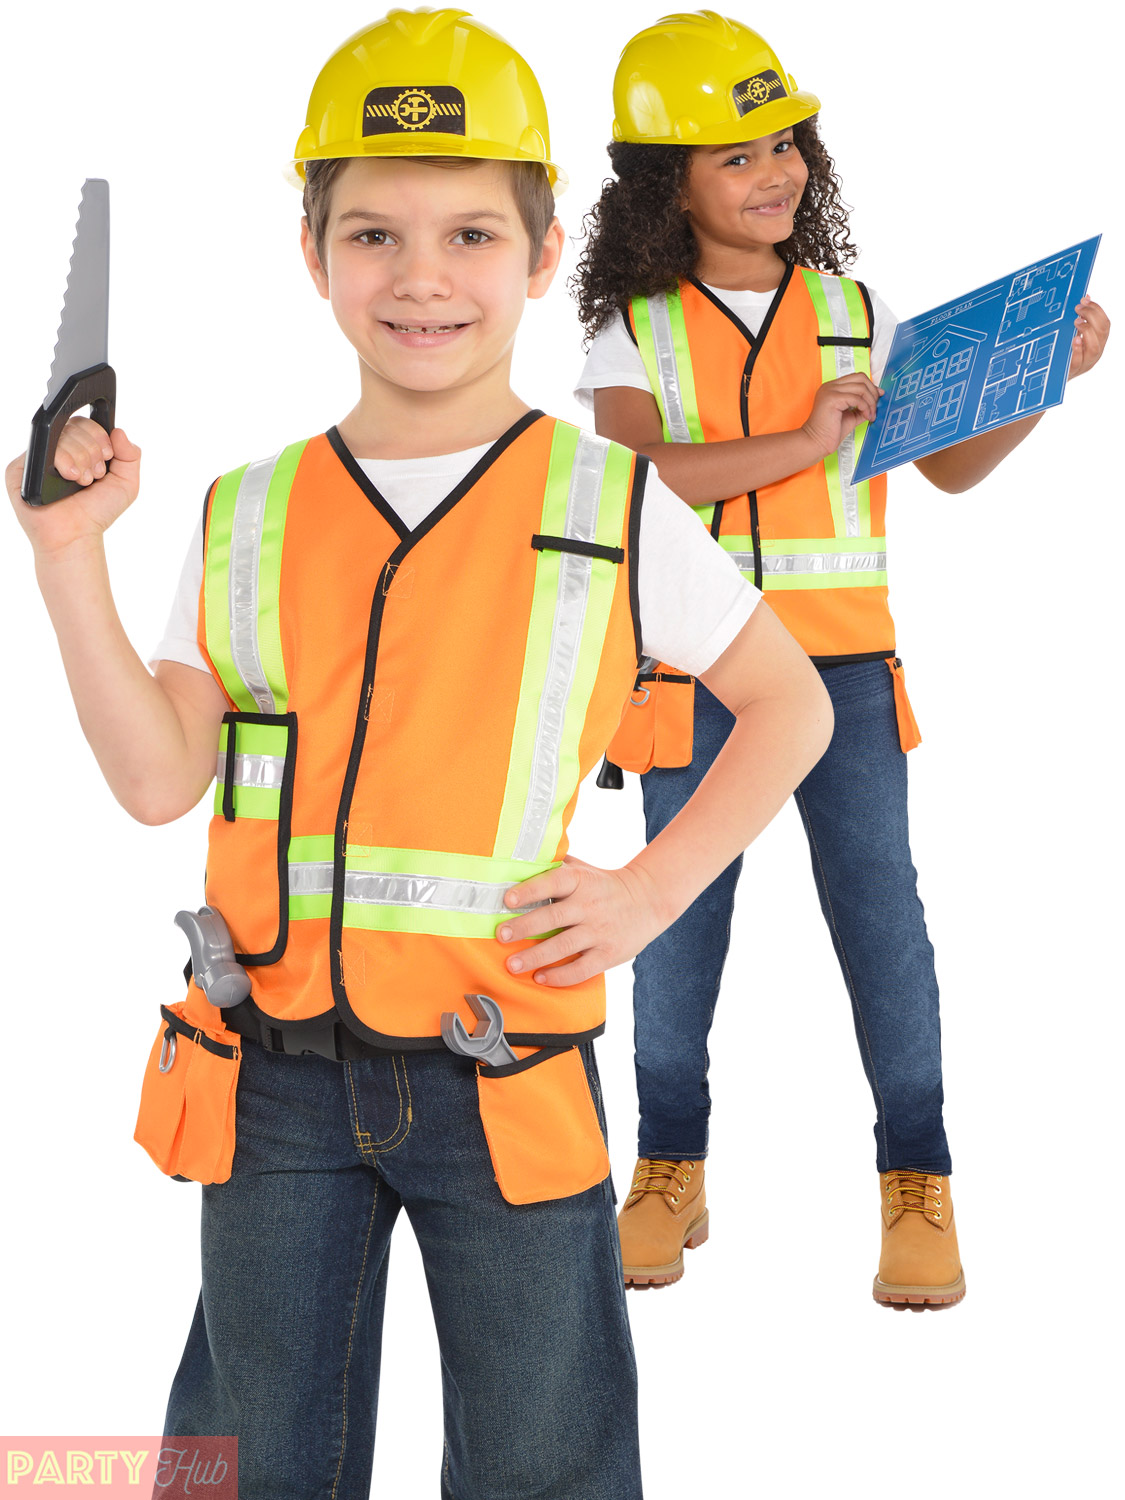 Shop our full line of kids' Halloween costumes, including this Melissa & Doug Construction Worker costume, at litastmaterlo.gq